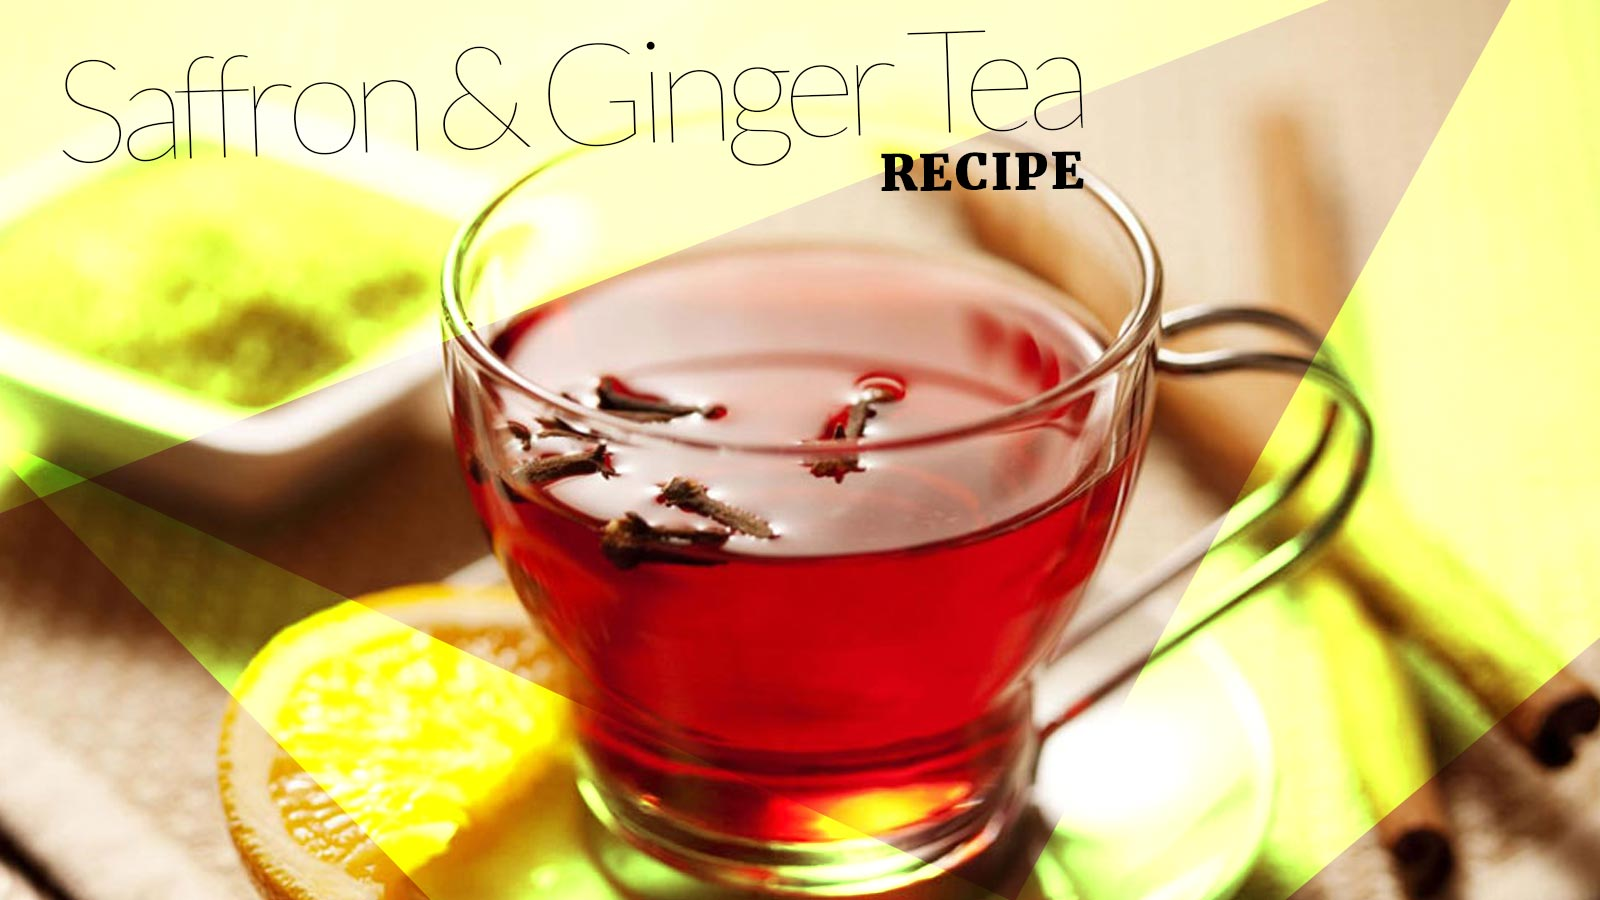 saffron and ginger tea recipe - the great wall travels